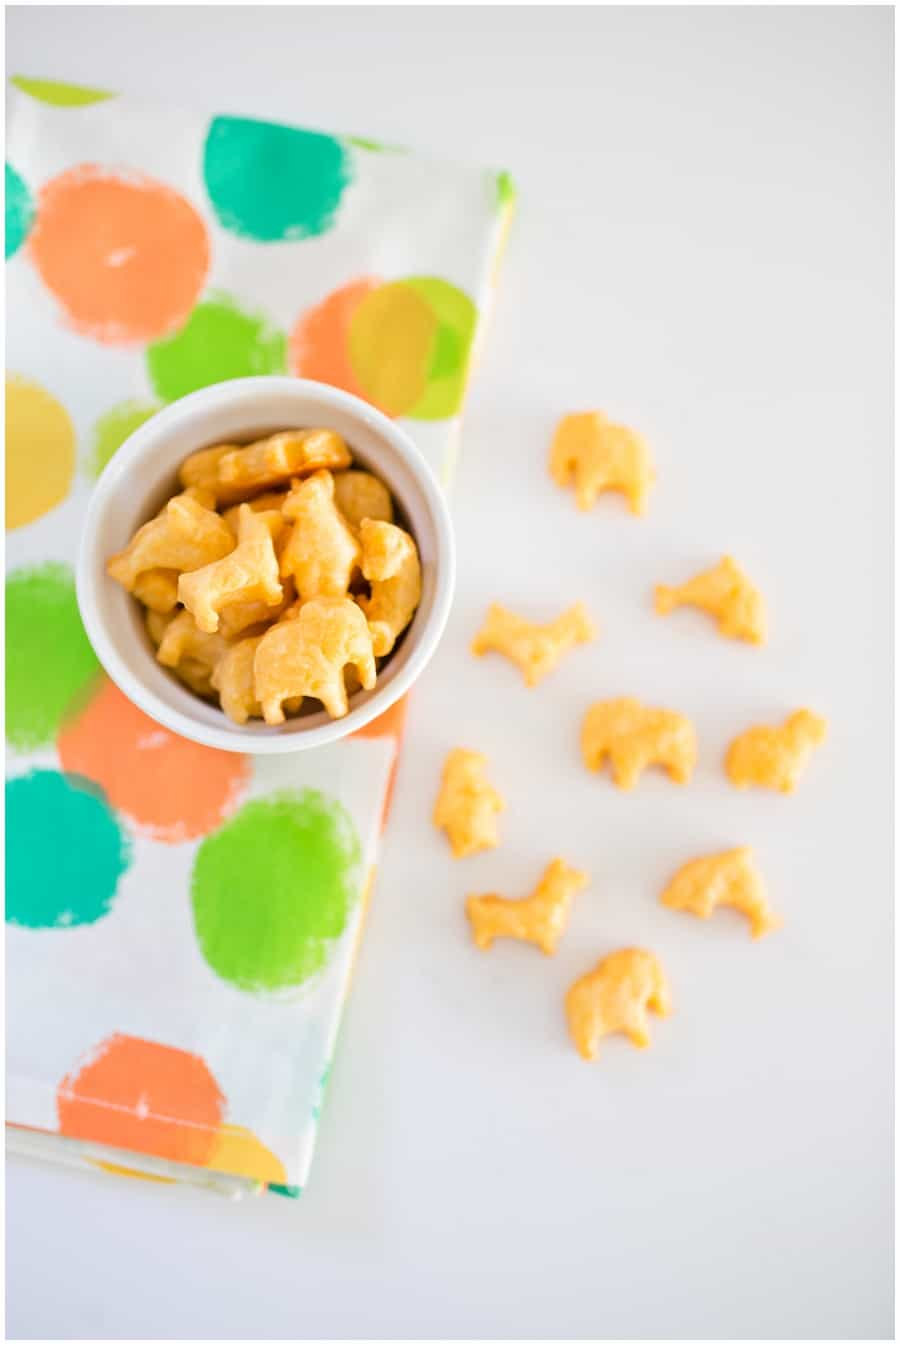 Homemade Cheese Animal Crackers